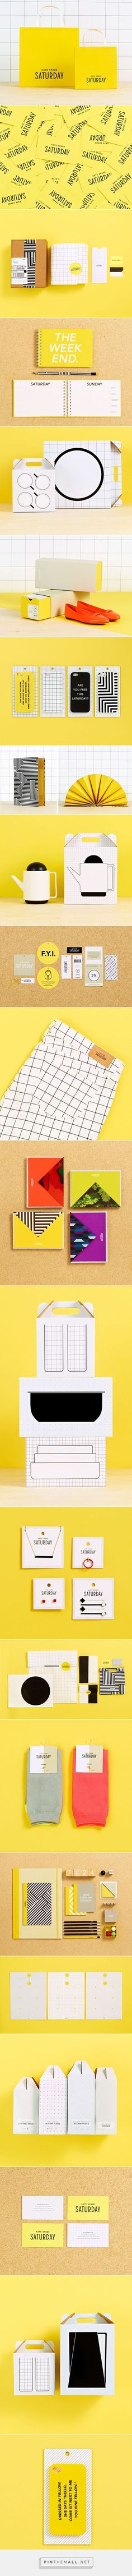 Kate Spade Saturday Packaging and Product on Behance... - a grouped images picture